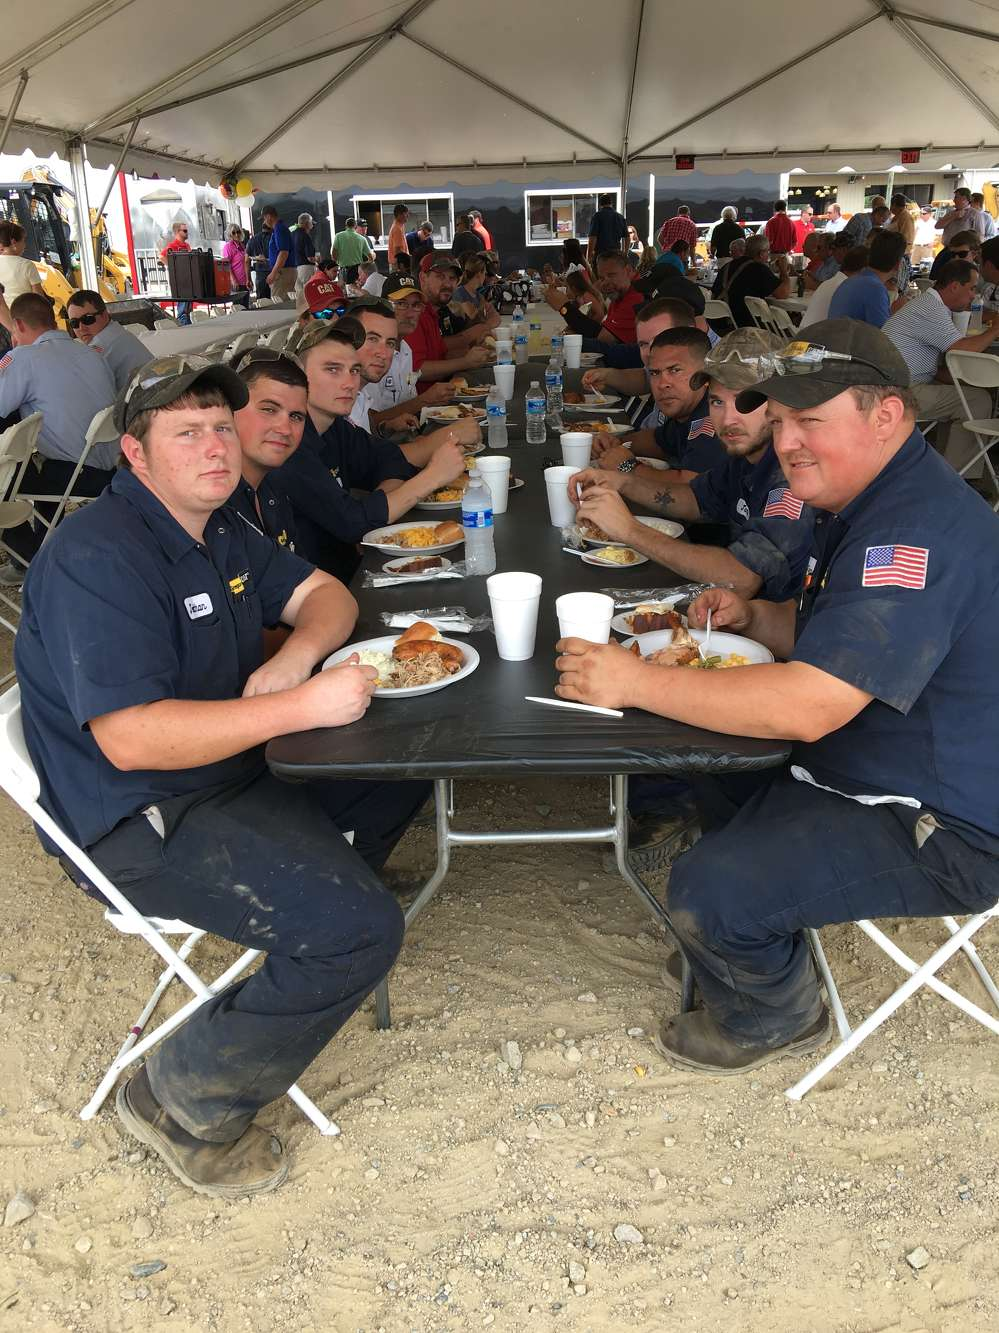 The service technicians take a break to enjoy lunch.